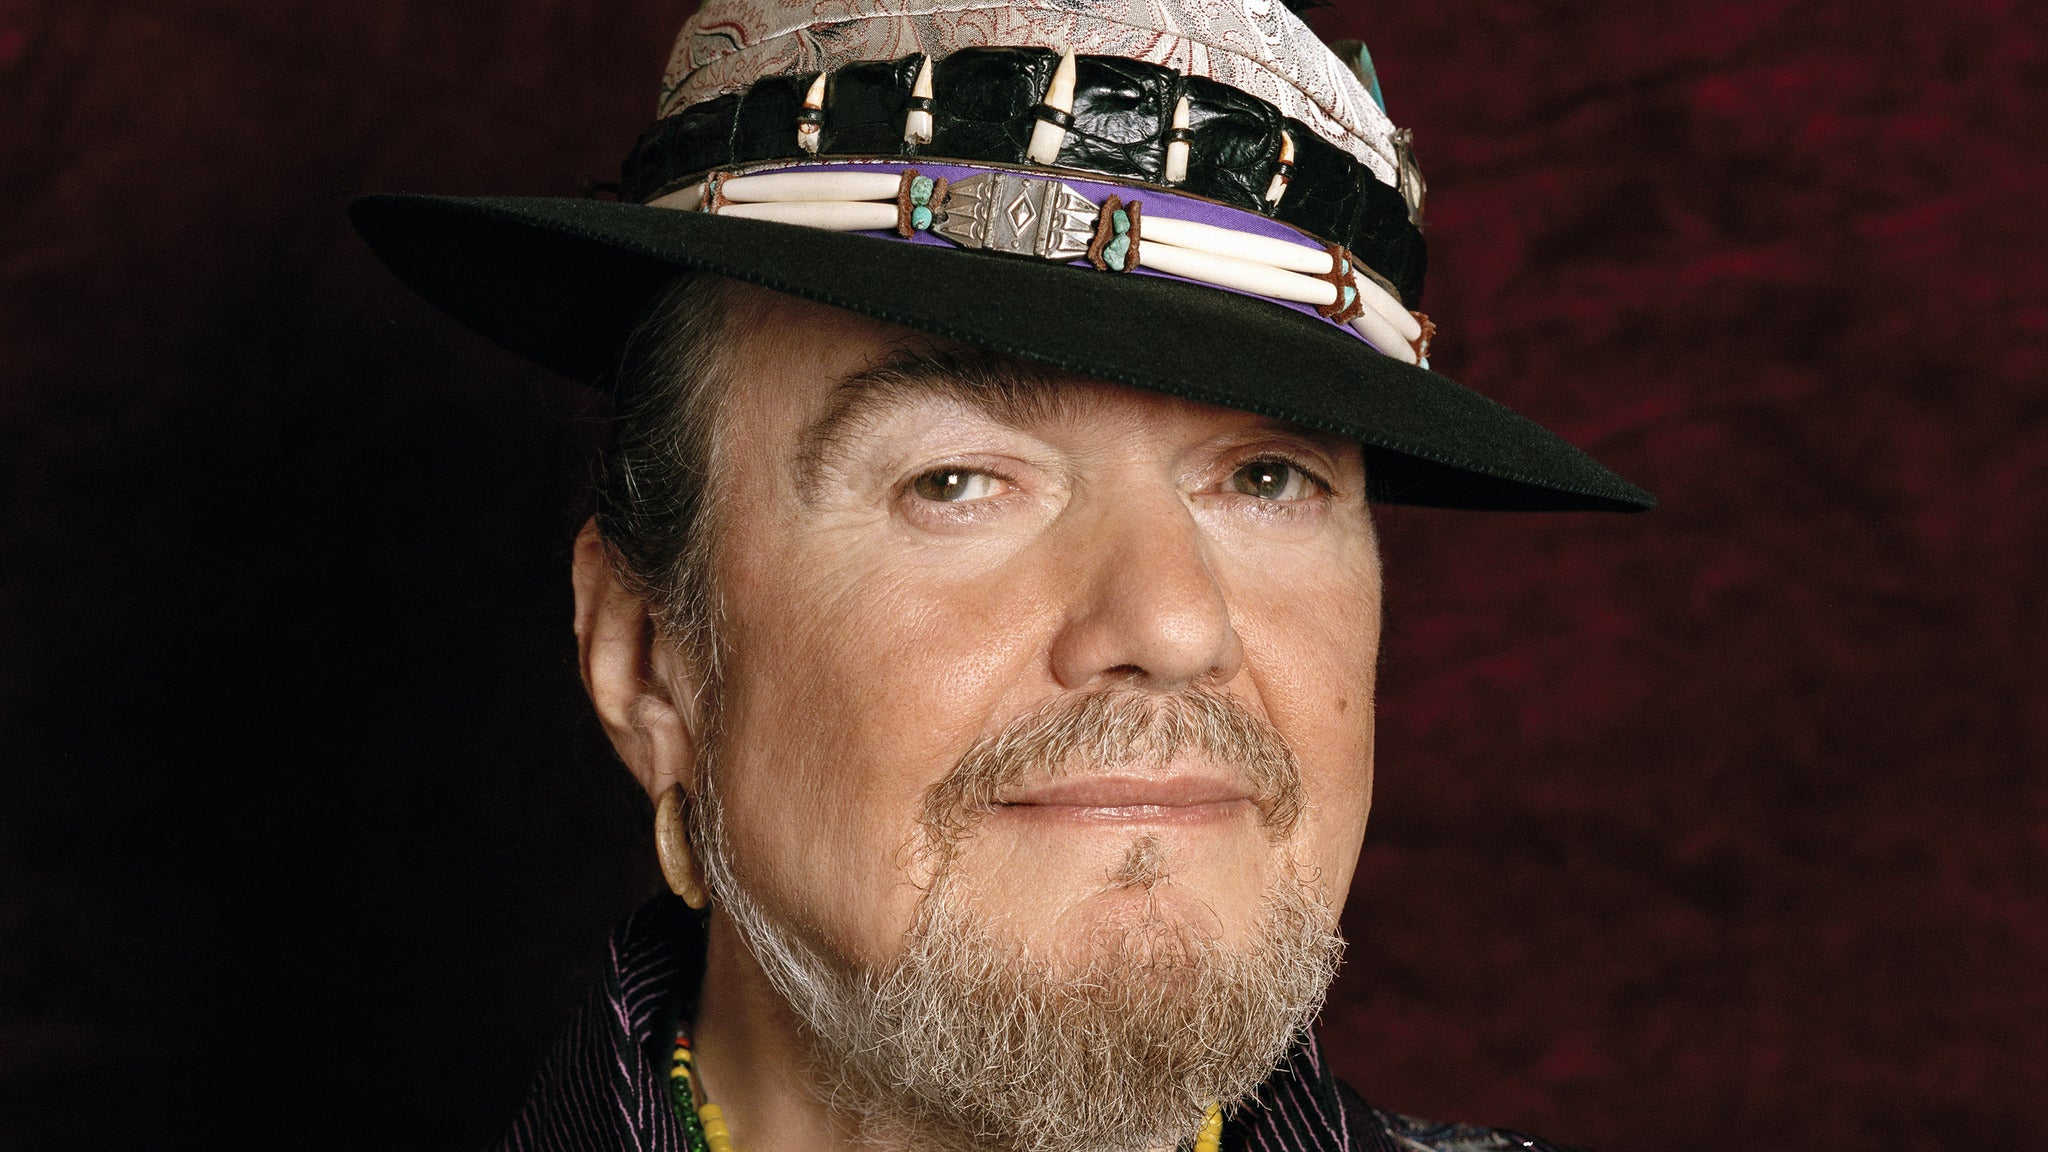 An evening with Dr. John & The Nite Trippers